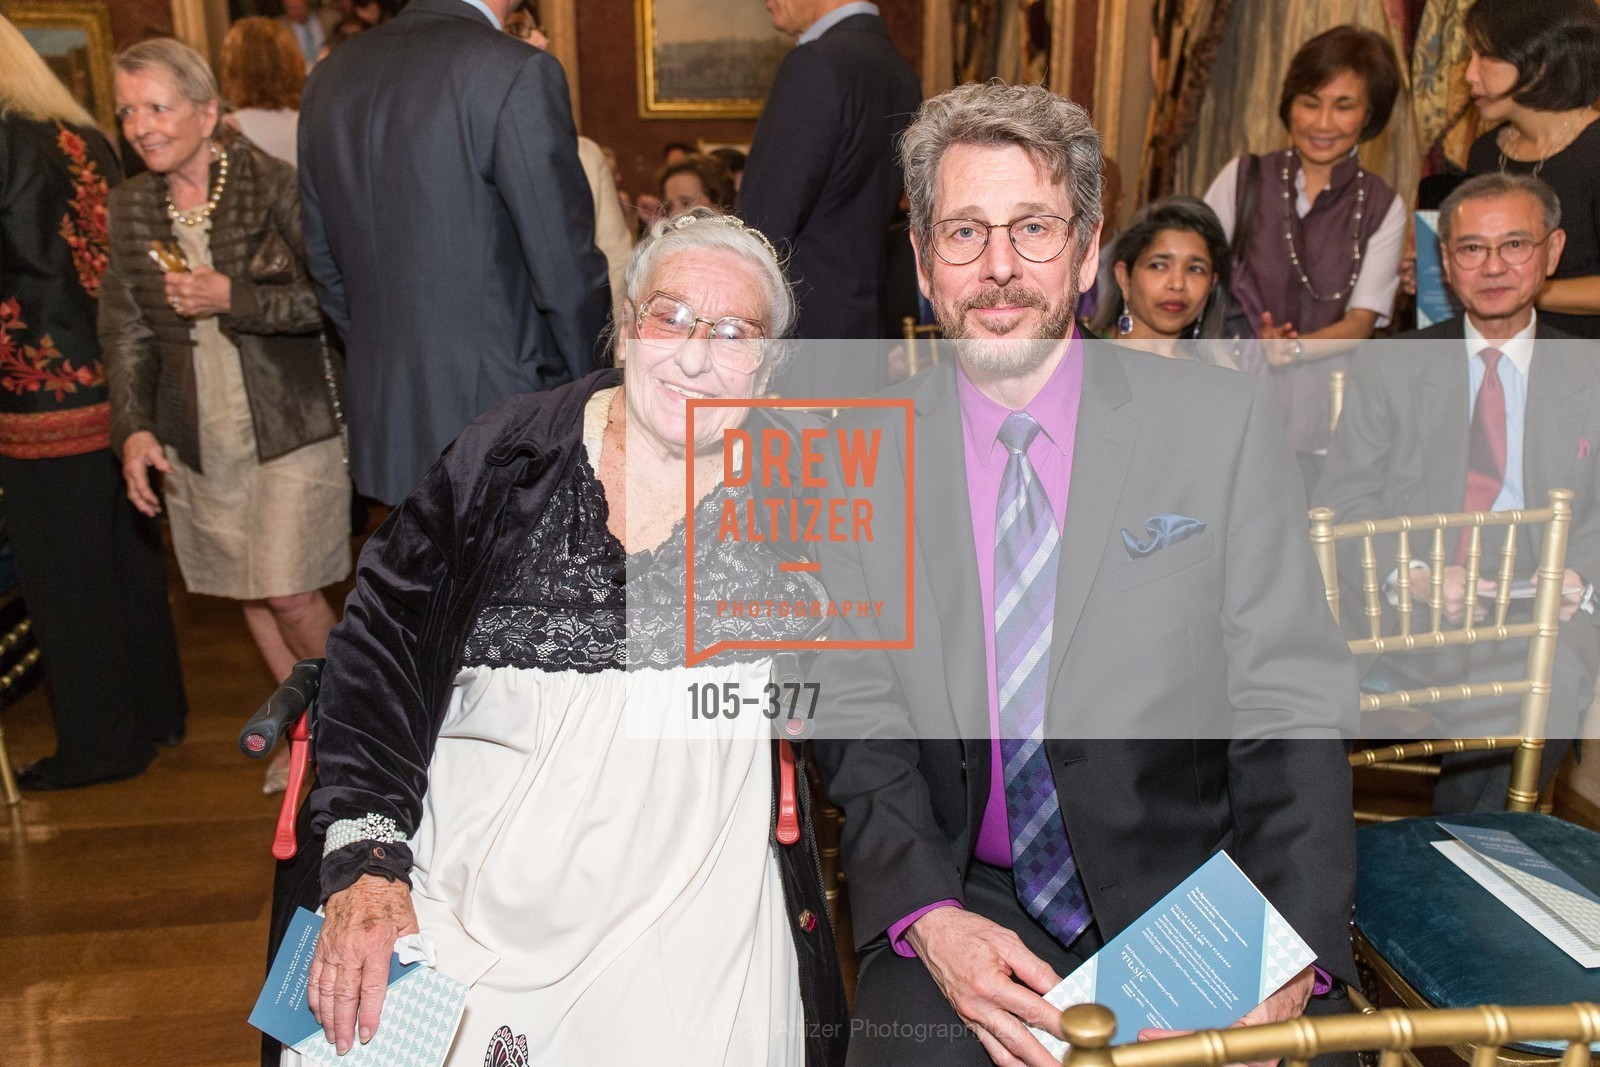 Eloise Bhullier, Larry Hancock, Getty Host SF Conservatory of Music with Marilyn Horne, Private Residence, October 15th, 2015,Drew Altizer, Drew Altizer Photography, full-service agency, private events, San Francisco photographer, photographer california